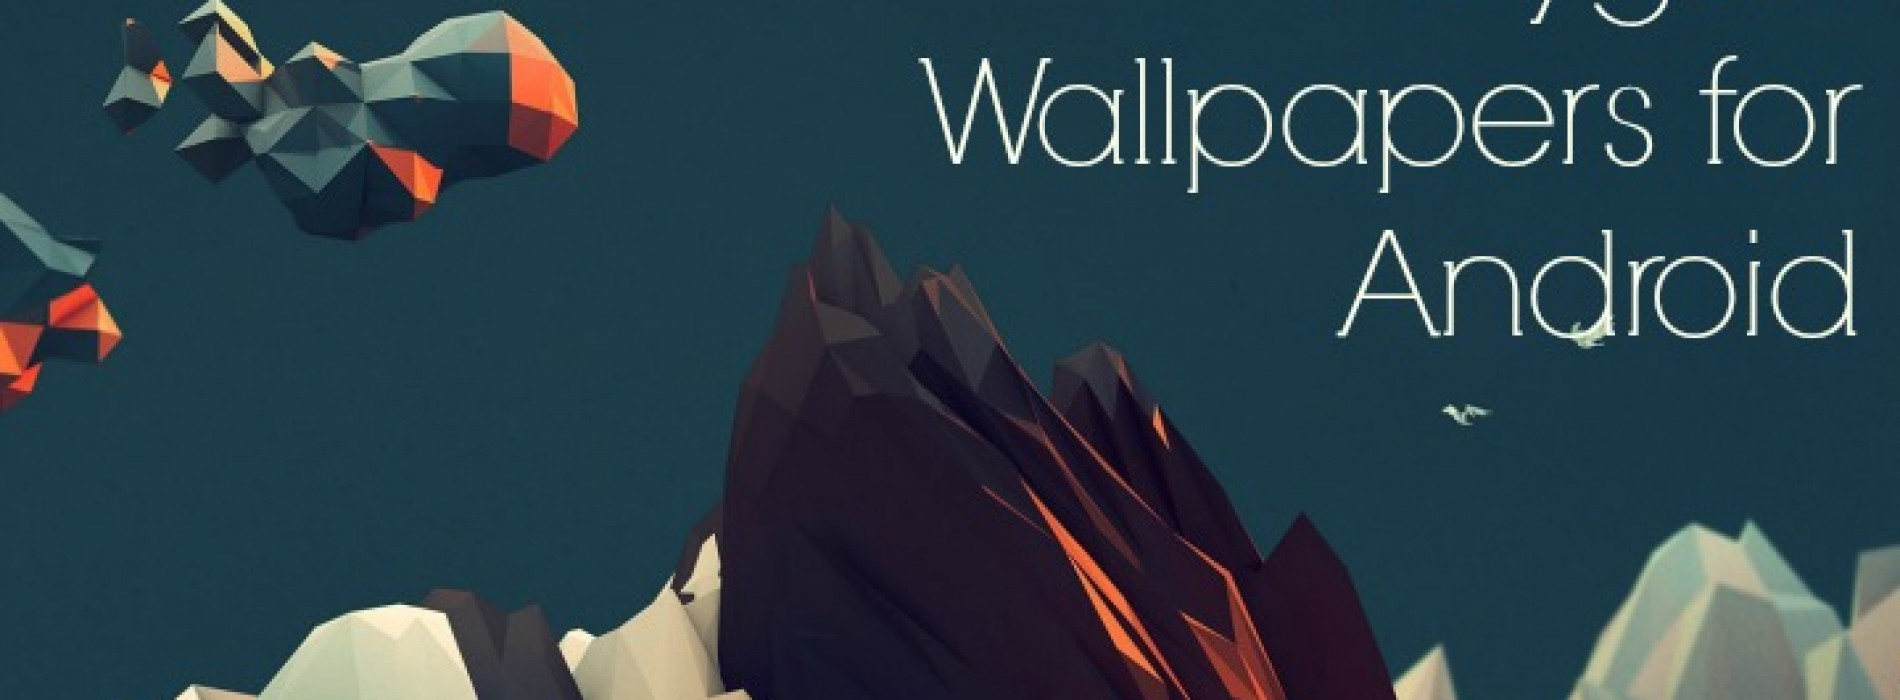 24 very cool wallpapers for your Android (Polygon Art)